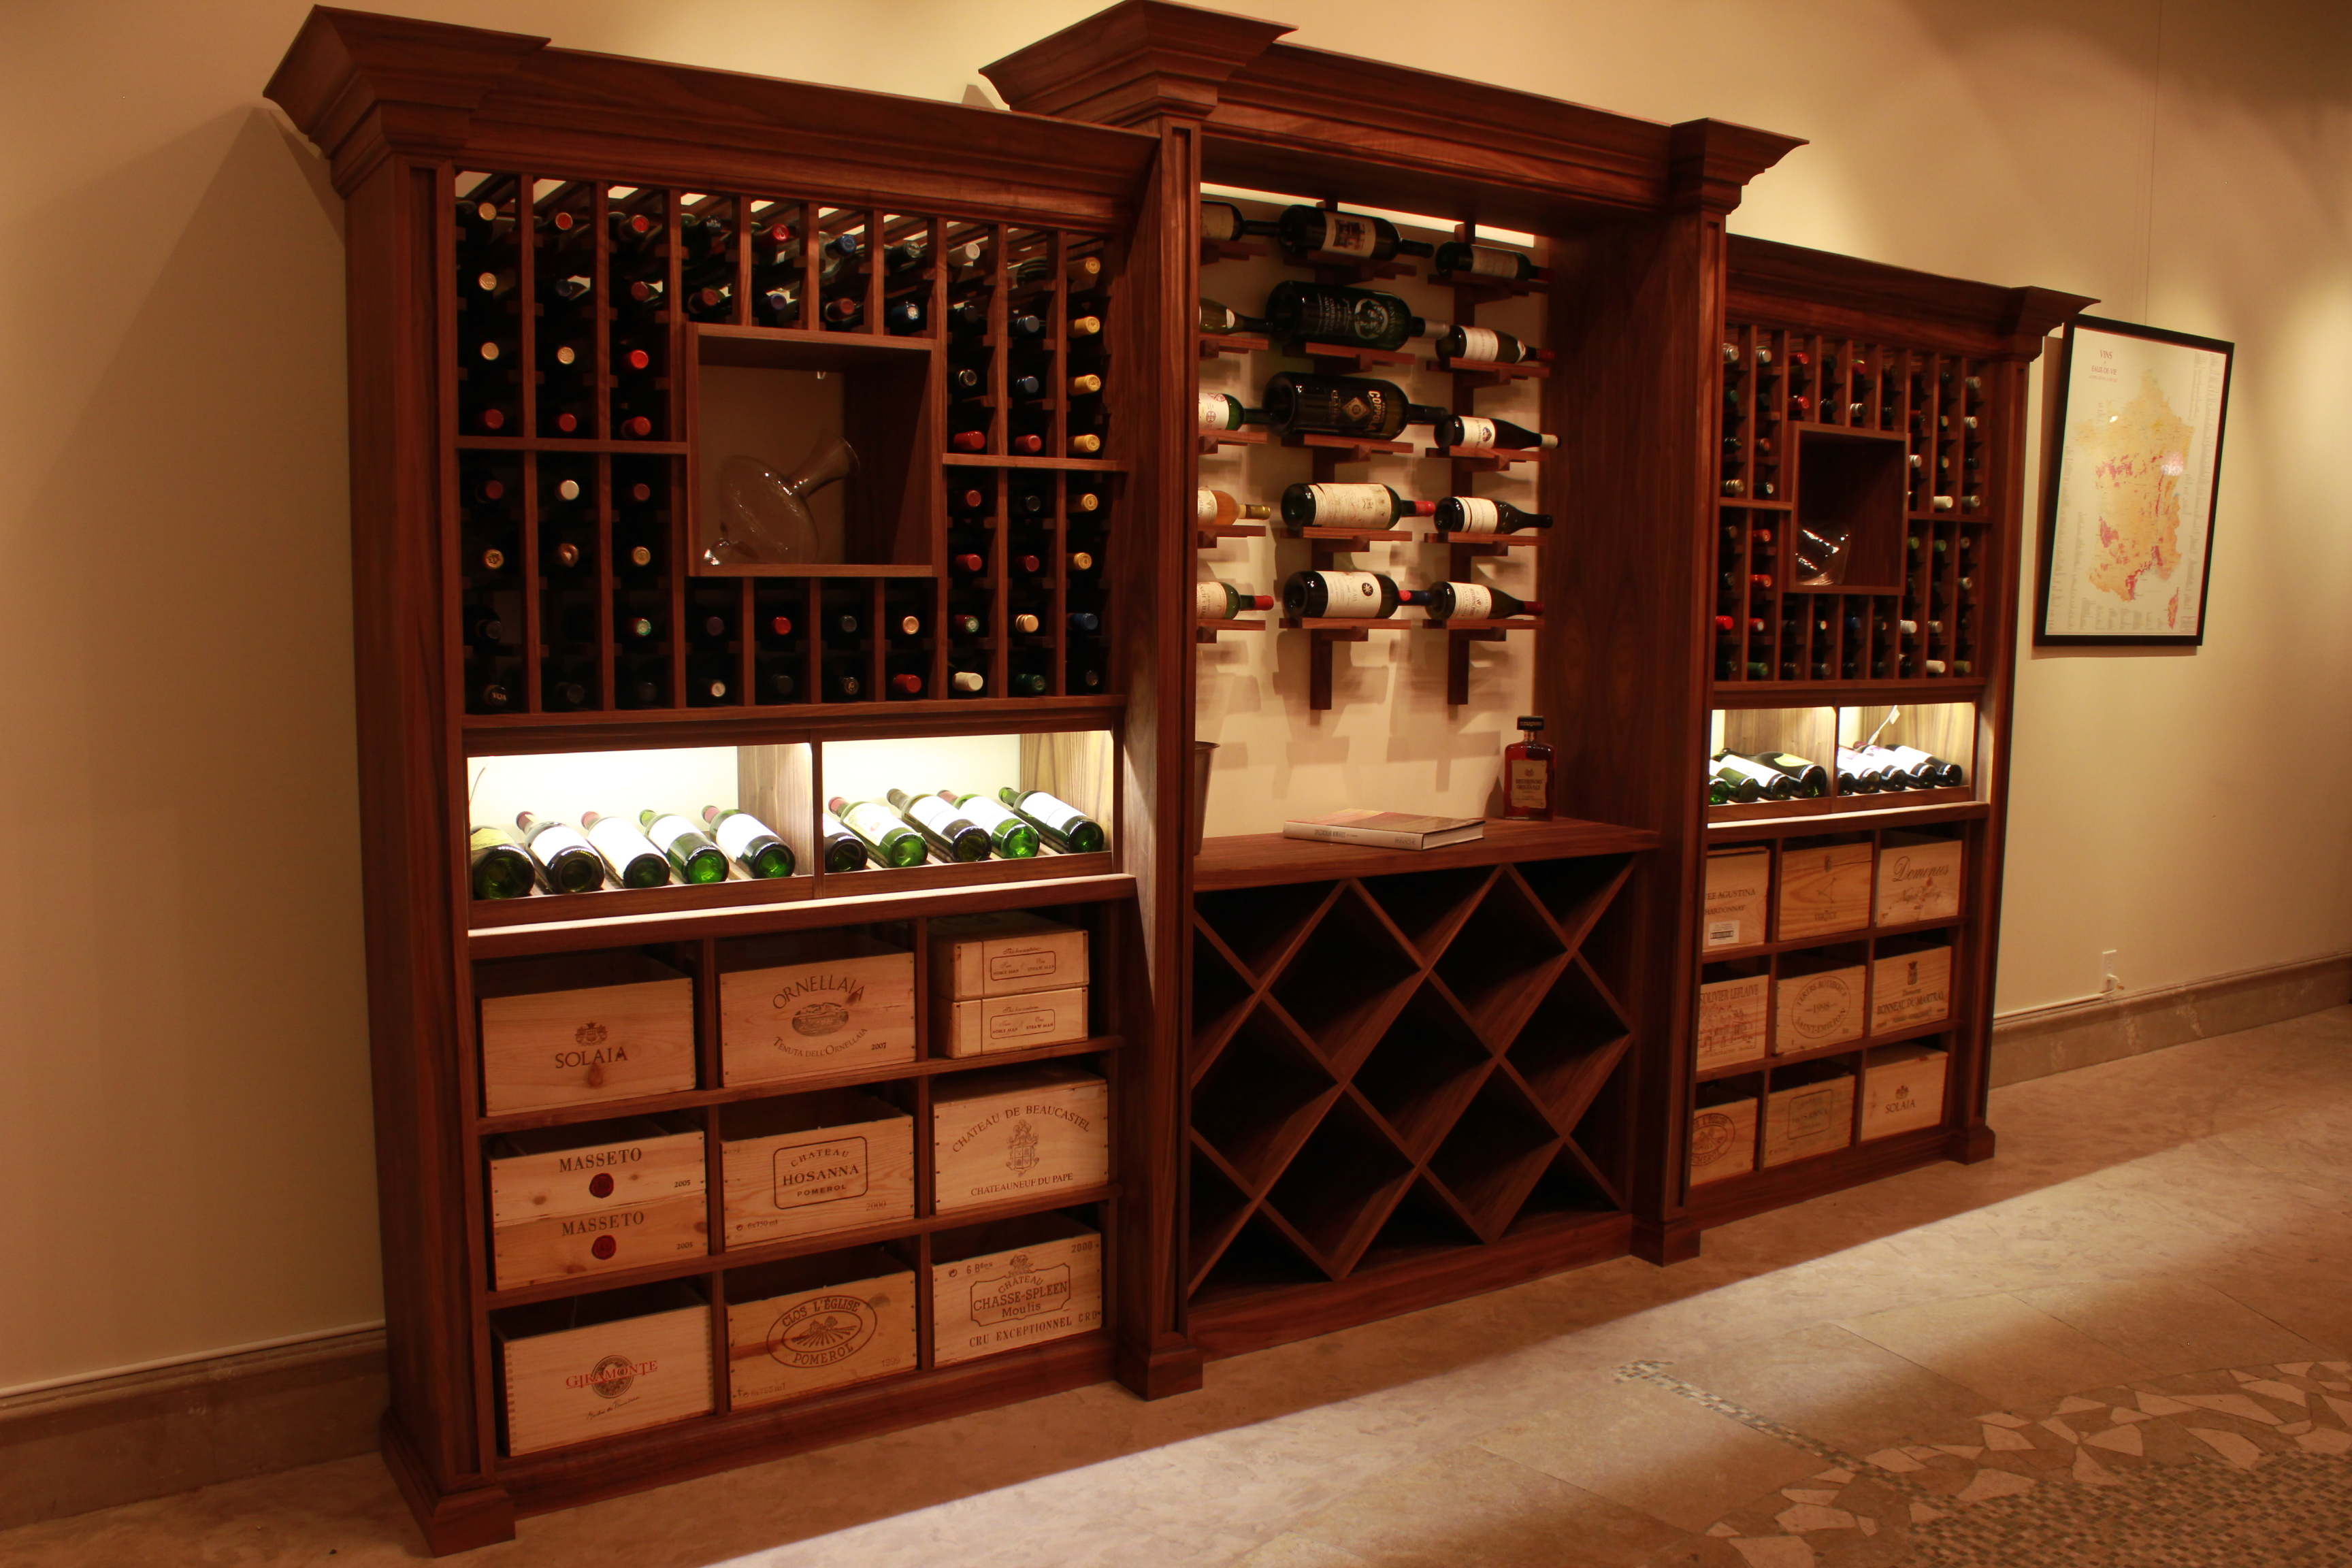 4 essential points about wine racking